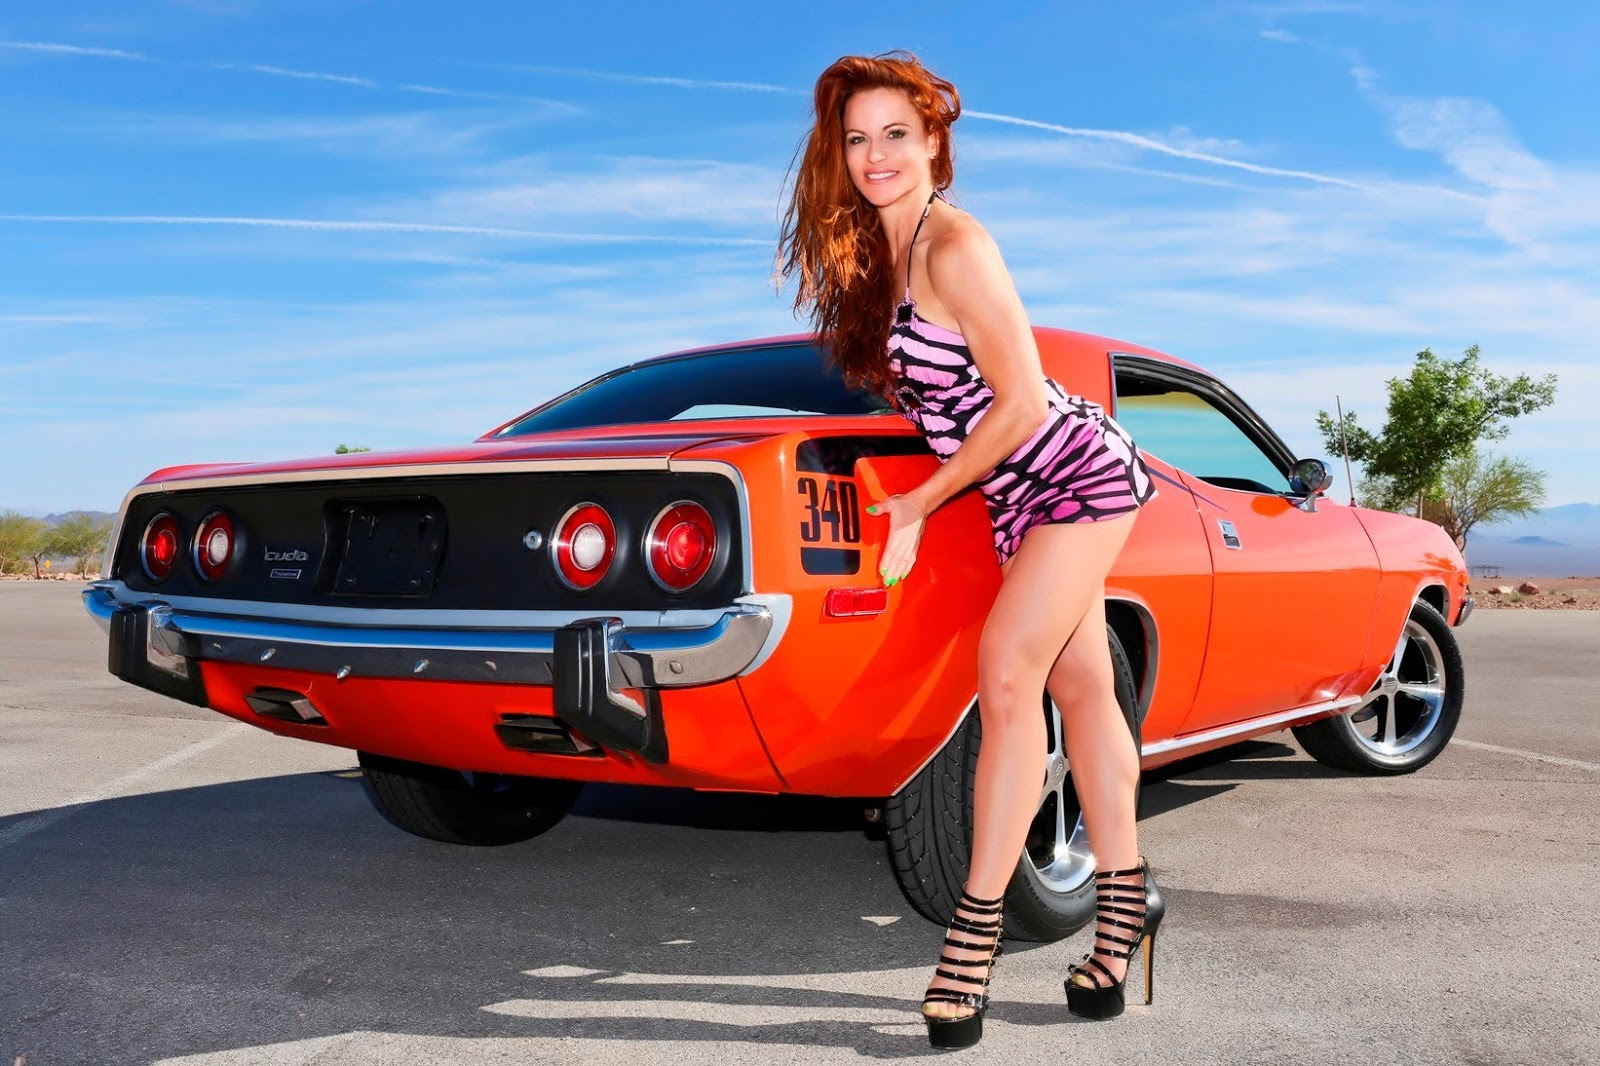 muscle-cars-and-hot-babes-getting-fucked